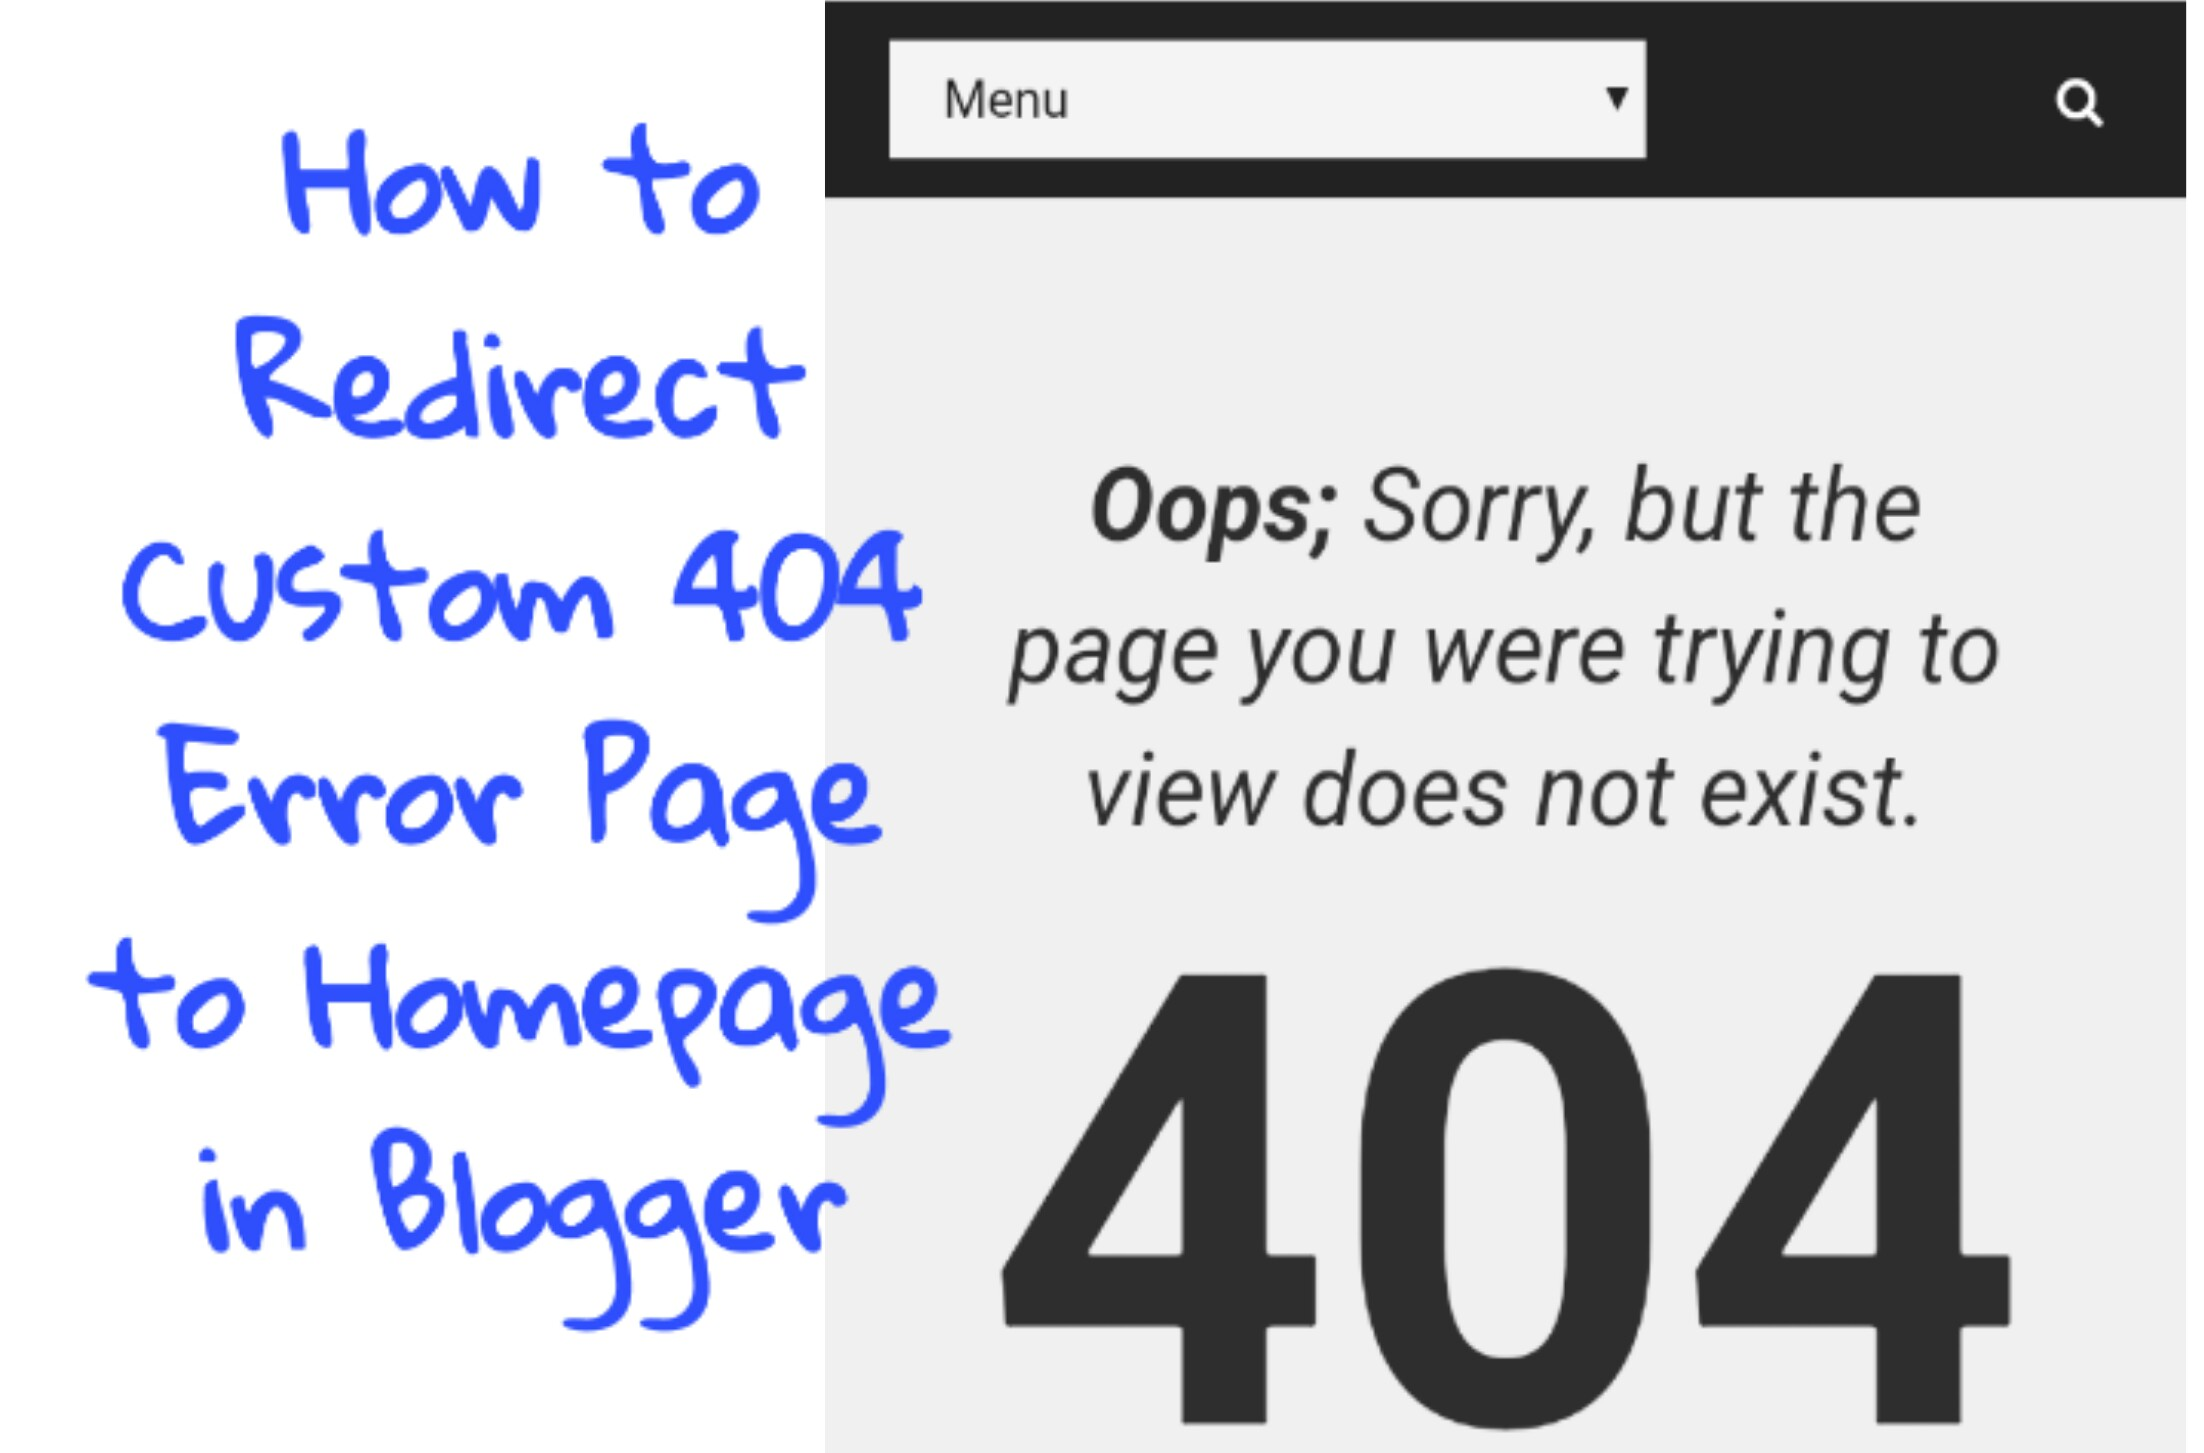 How to redirect custom 404 error page to homepage in blogger.